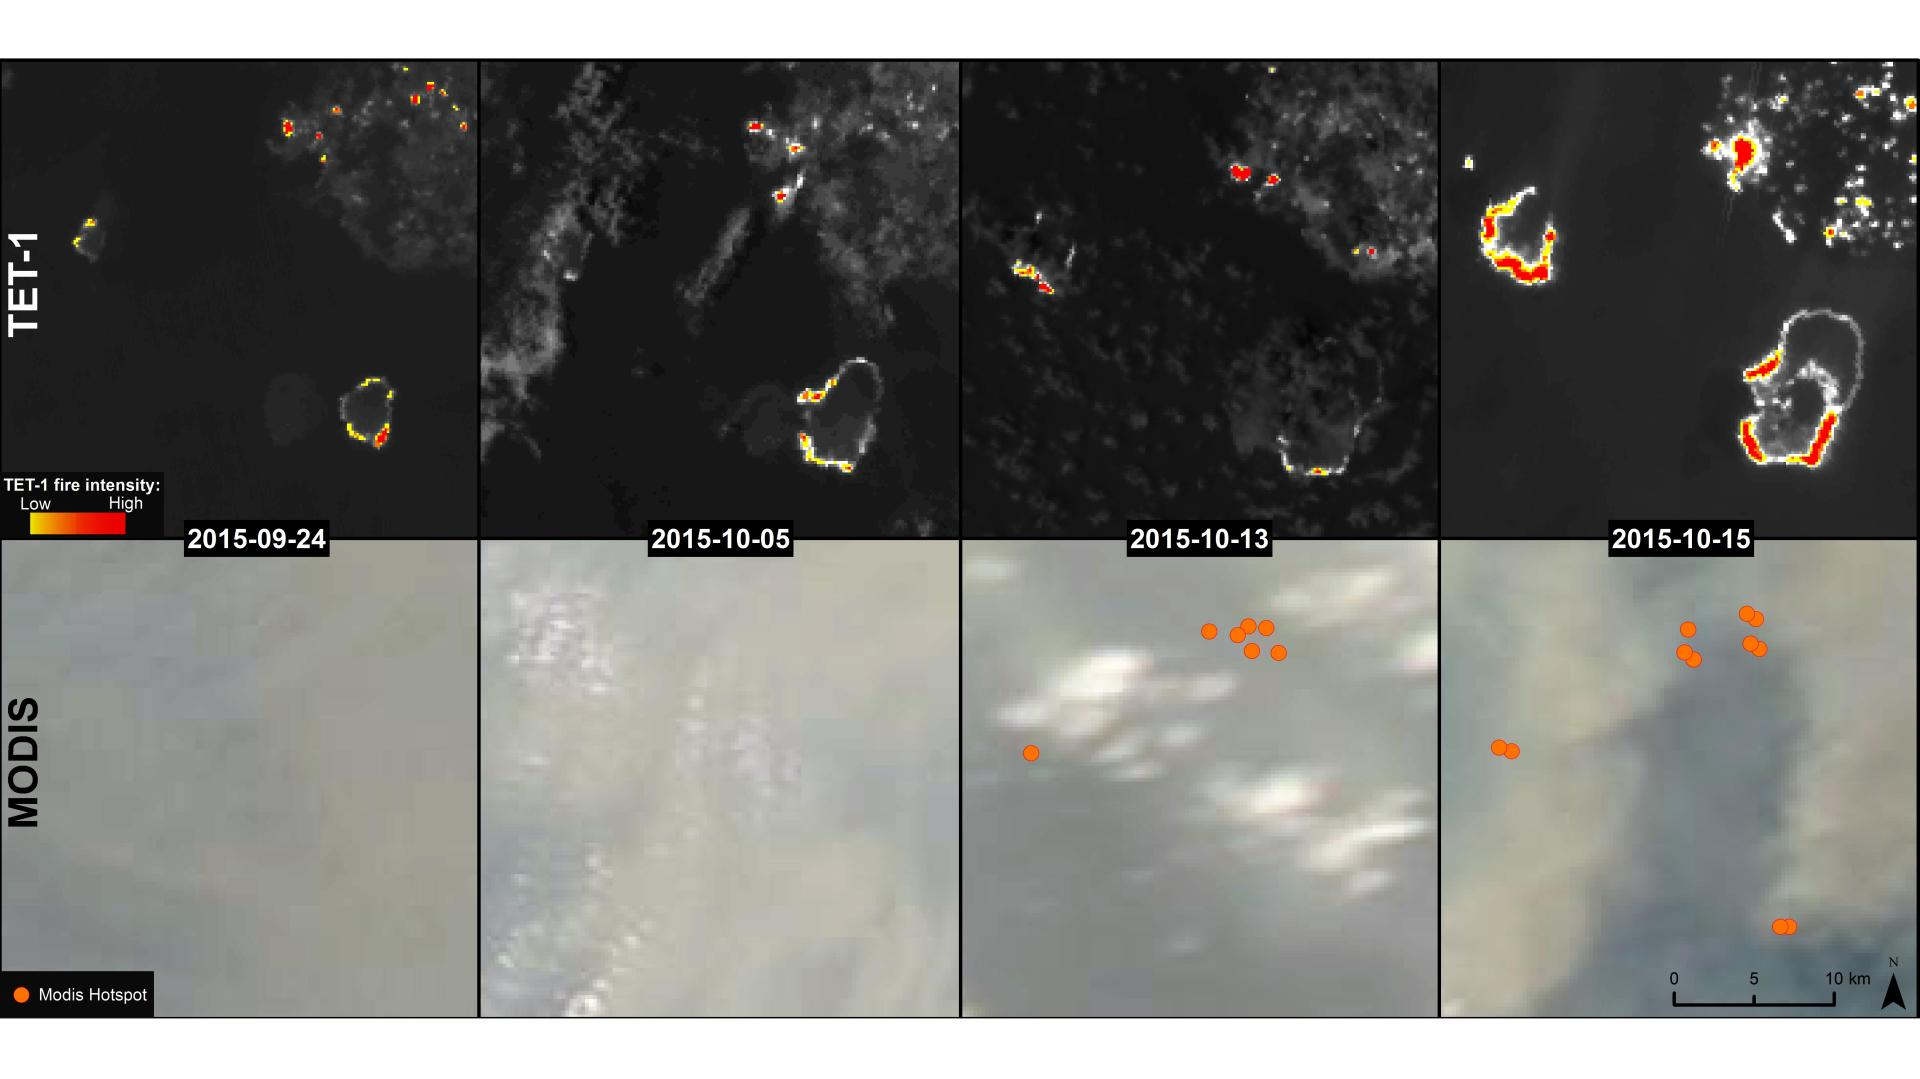 Time series images from TET and MODIS